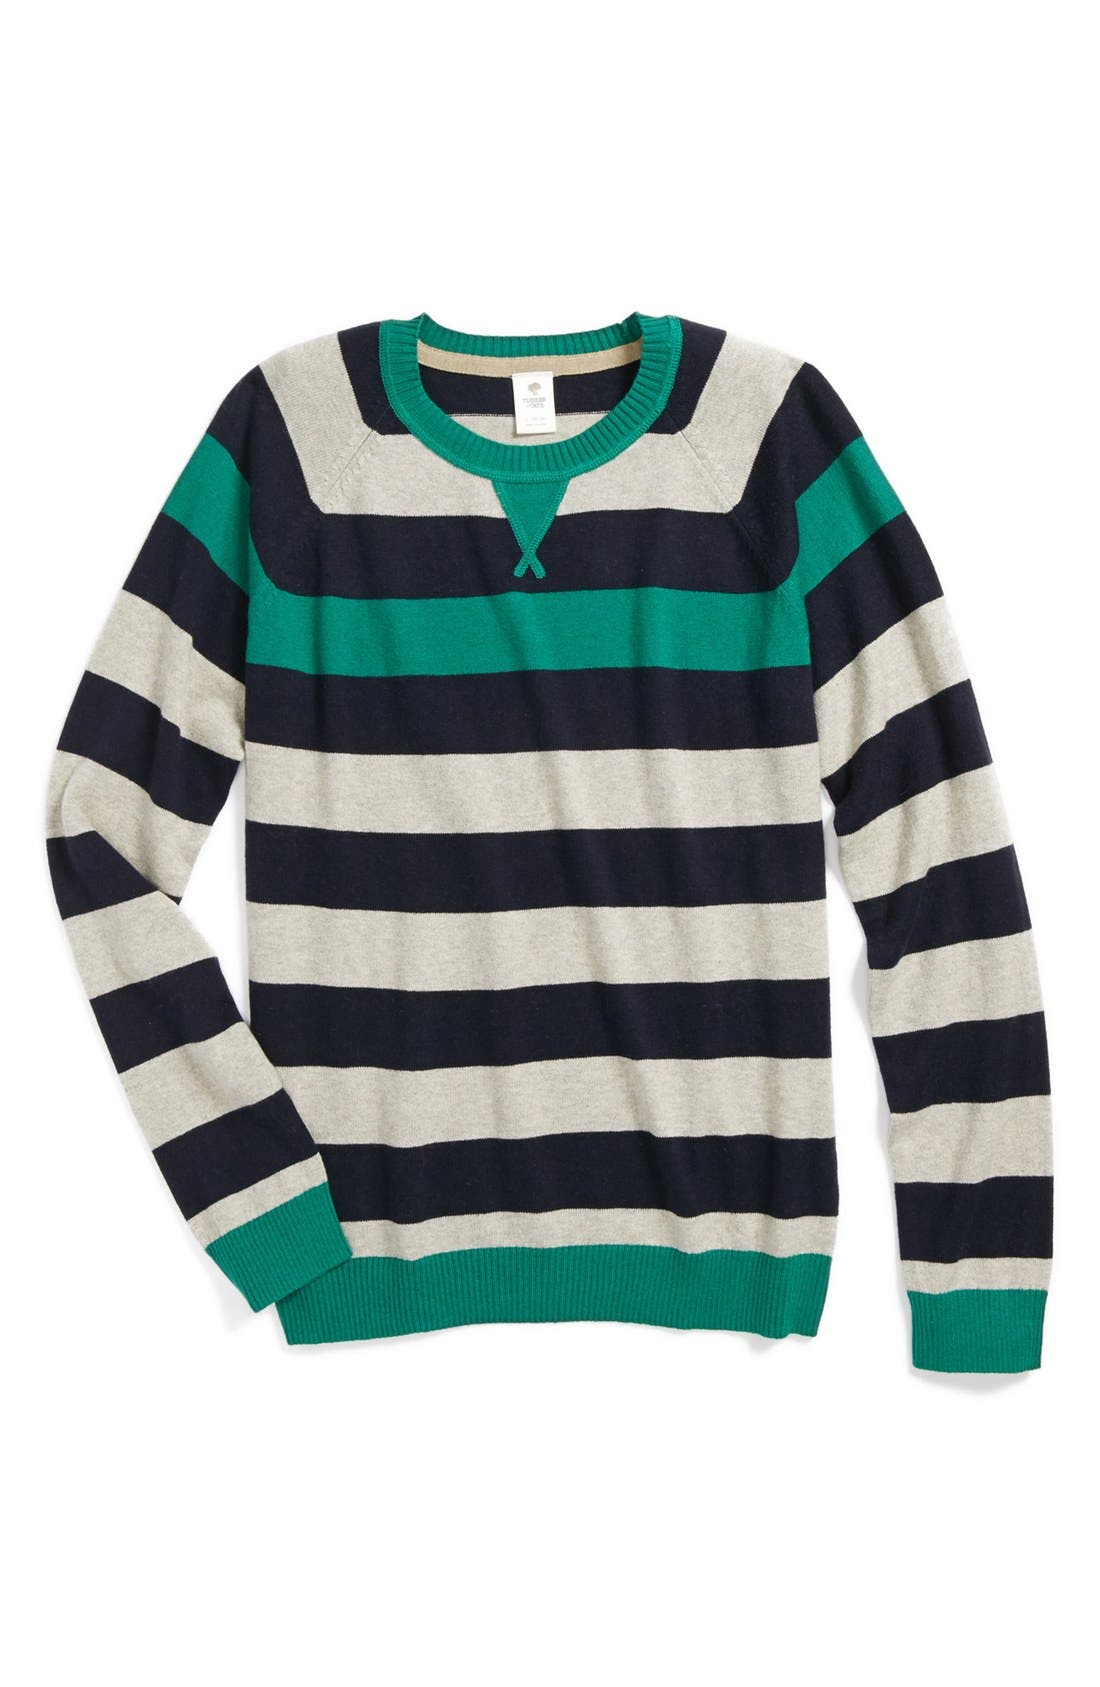 Main Image - Tucker + Tate 'Capital Street' Sweater (Little Boys)